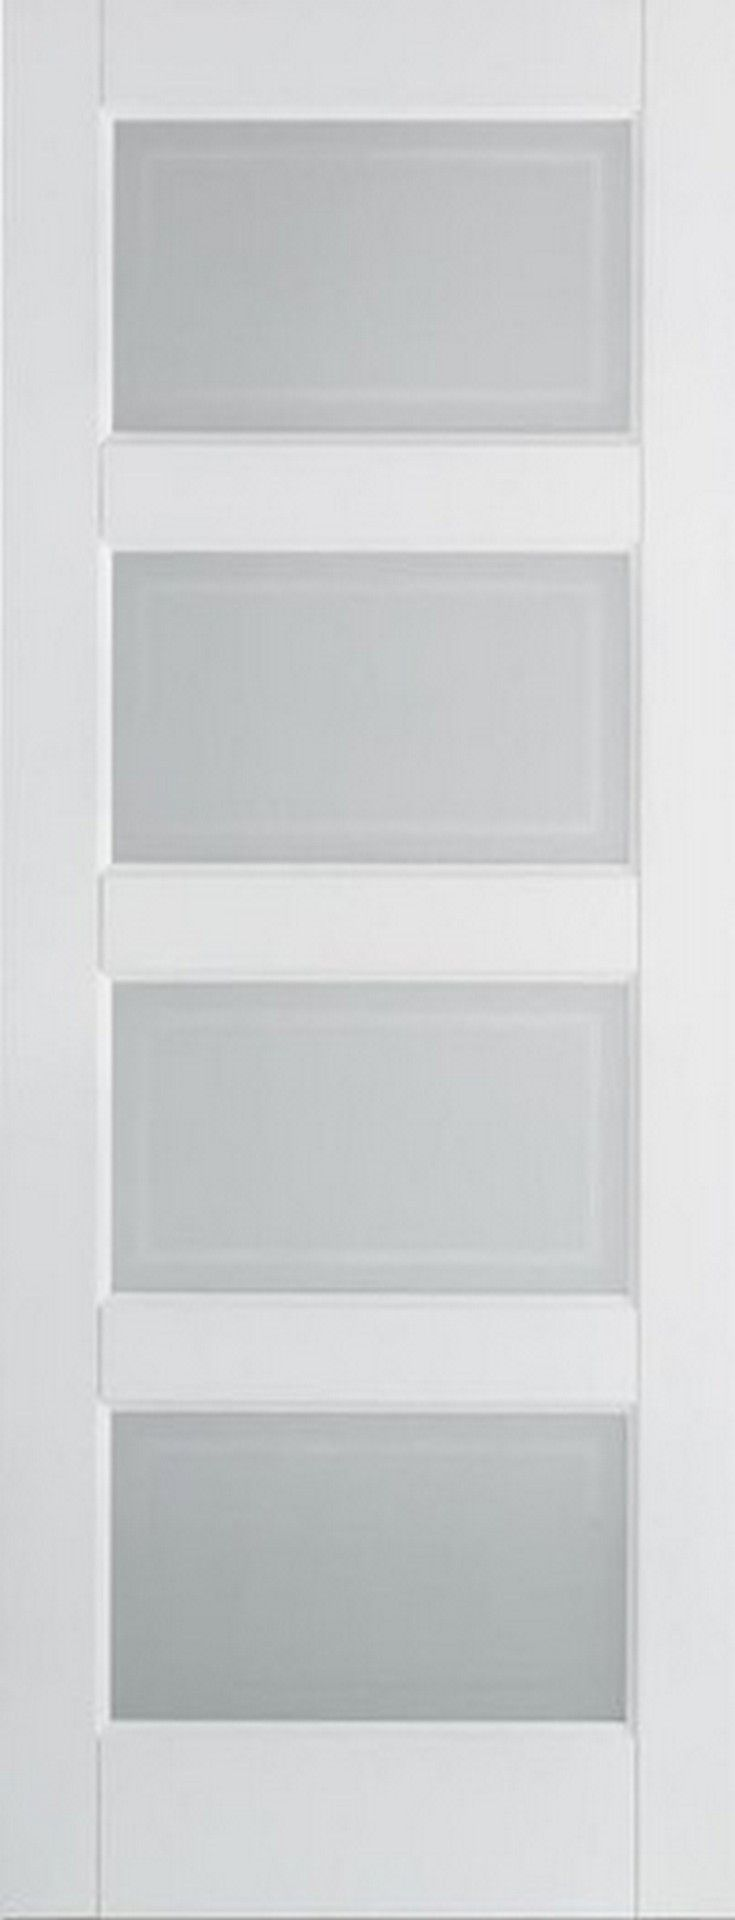 Internal White Contemporary 4 Panel Frosted Glass Door Moda Doors Glass Doors Interior Doors Interior Frosted Glass Internal Doors